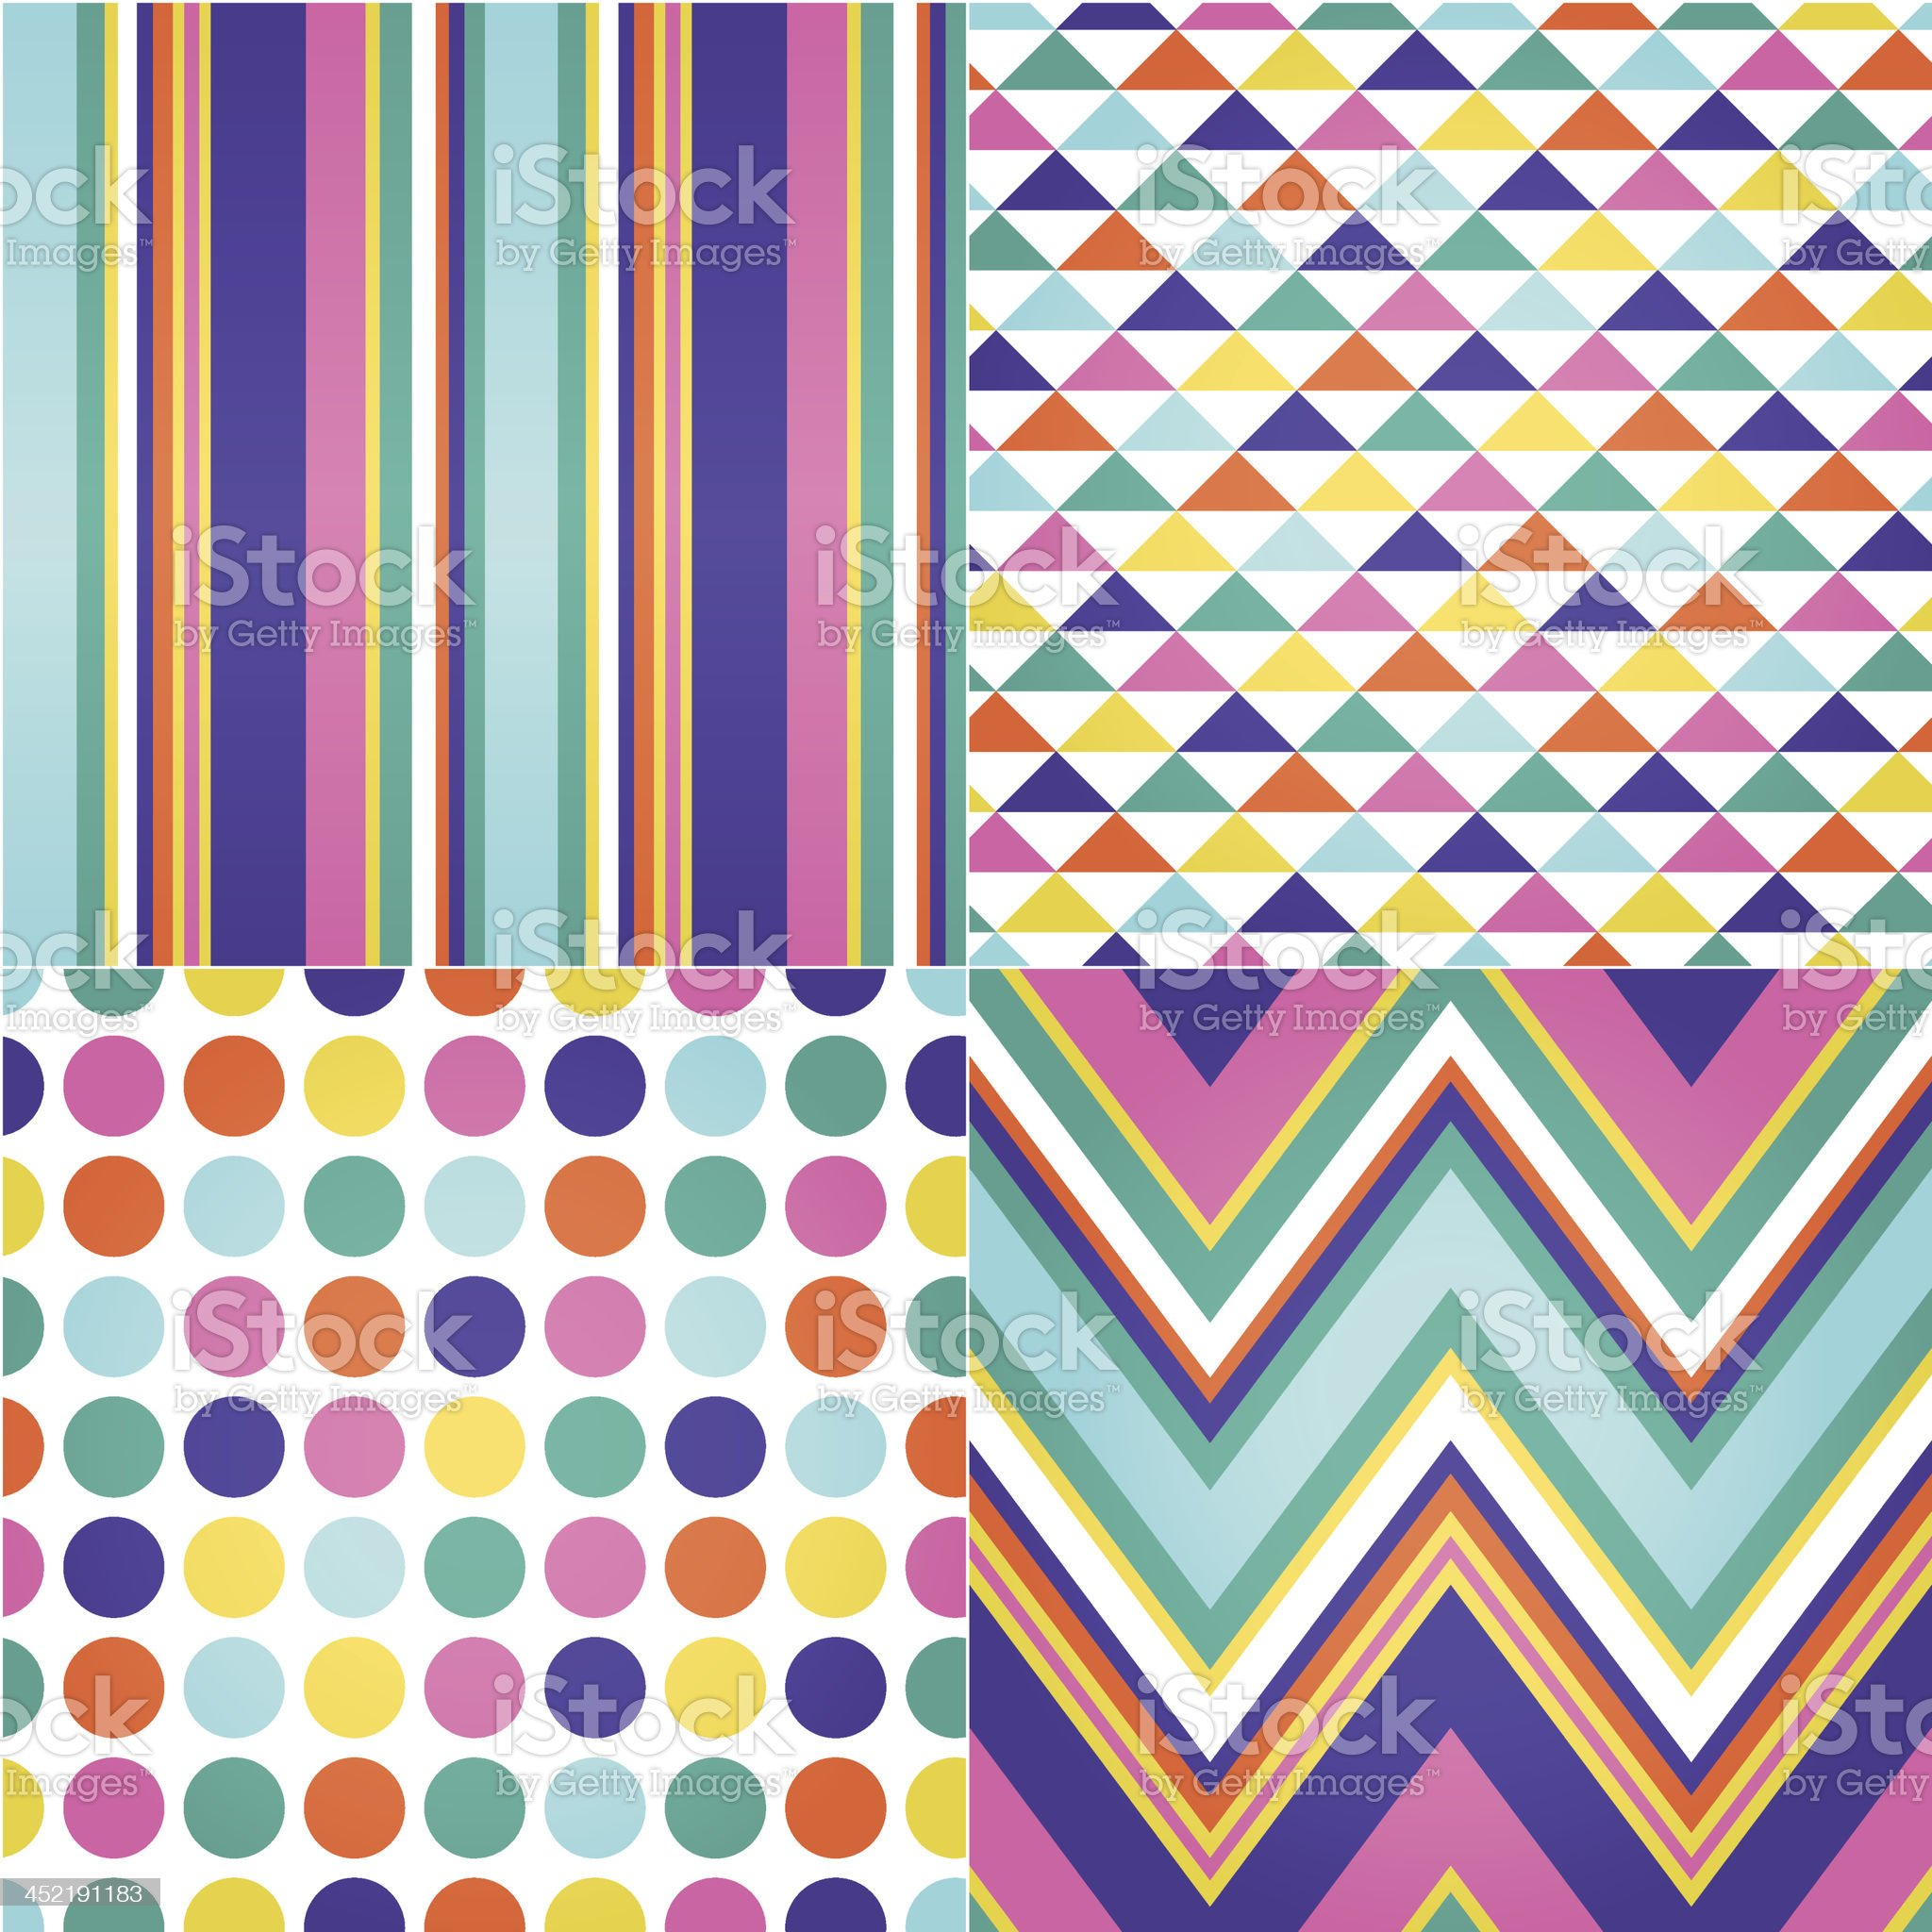 Colorful patterns of stripes, triangles, dots and zig zags royalty-free stock vector art